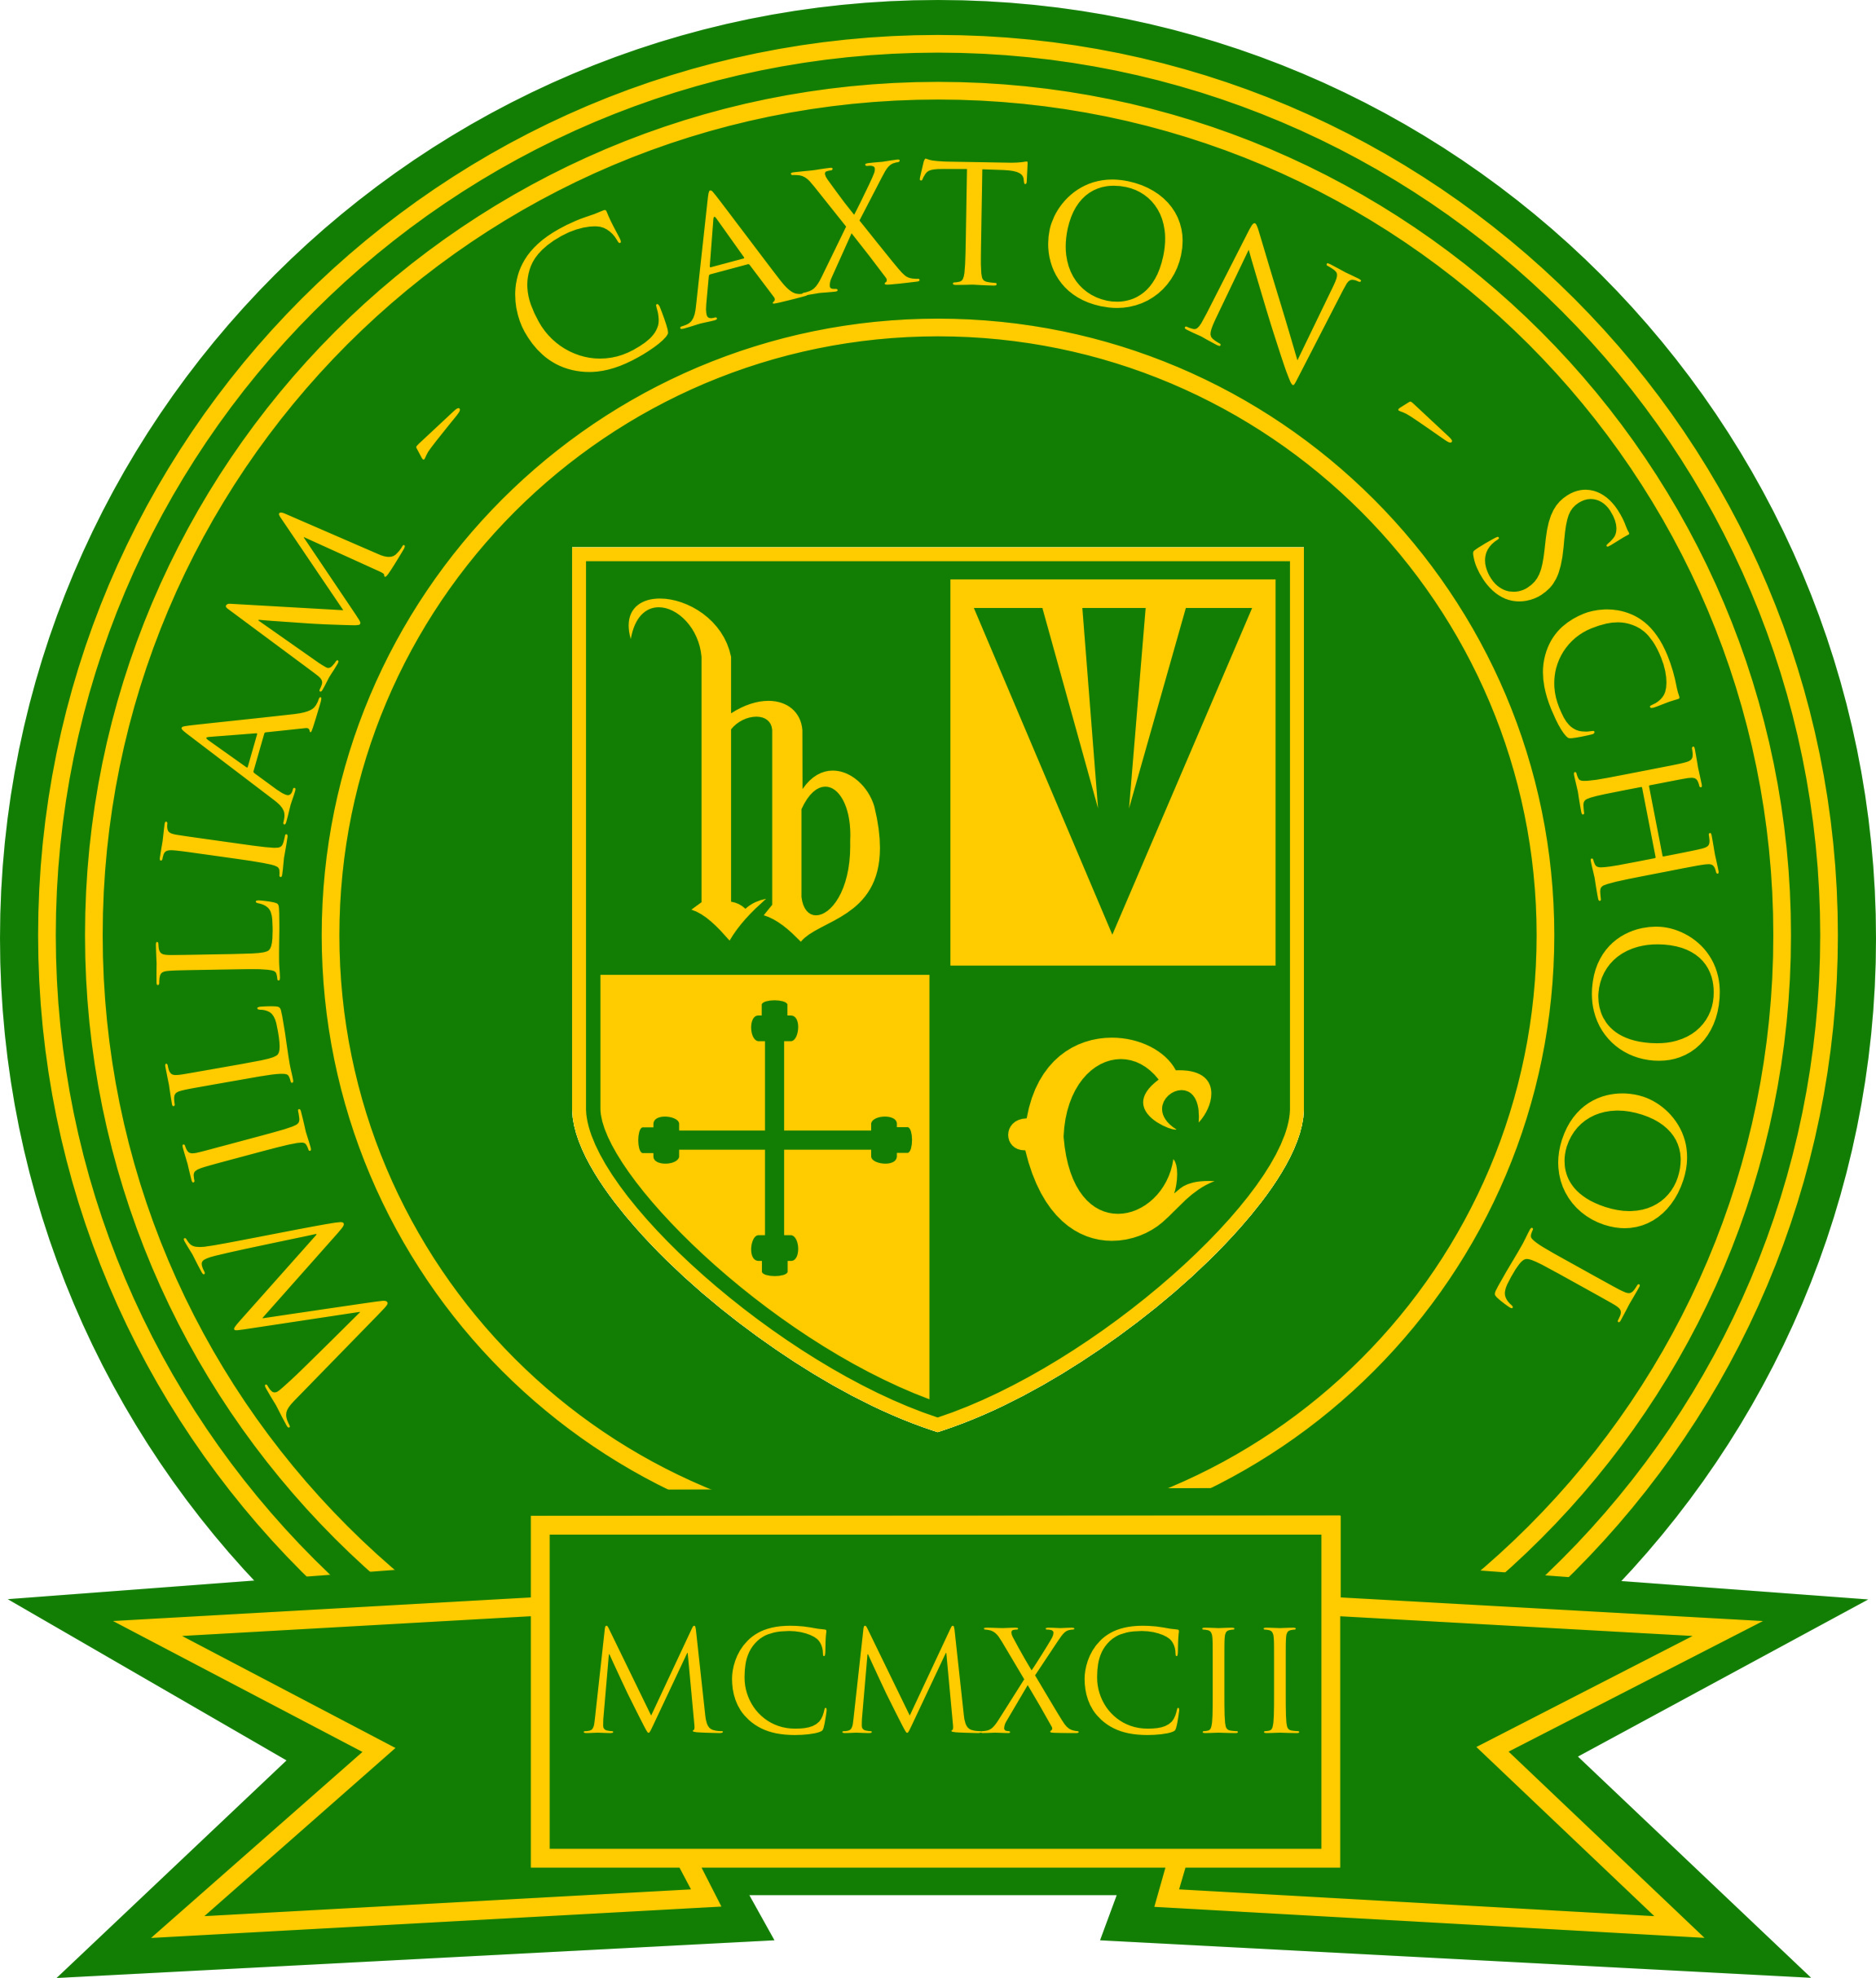 Escuela William Caxton